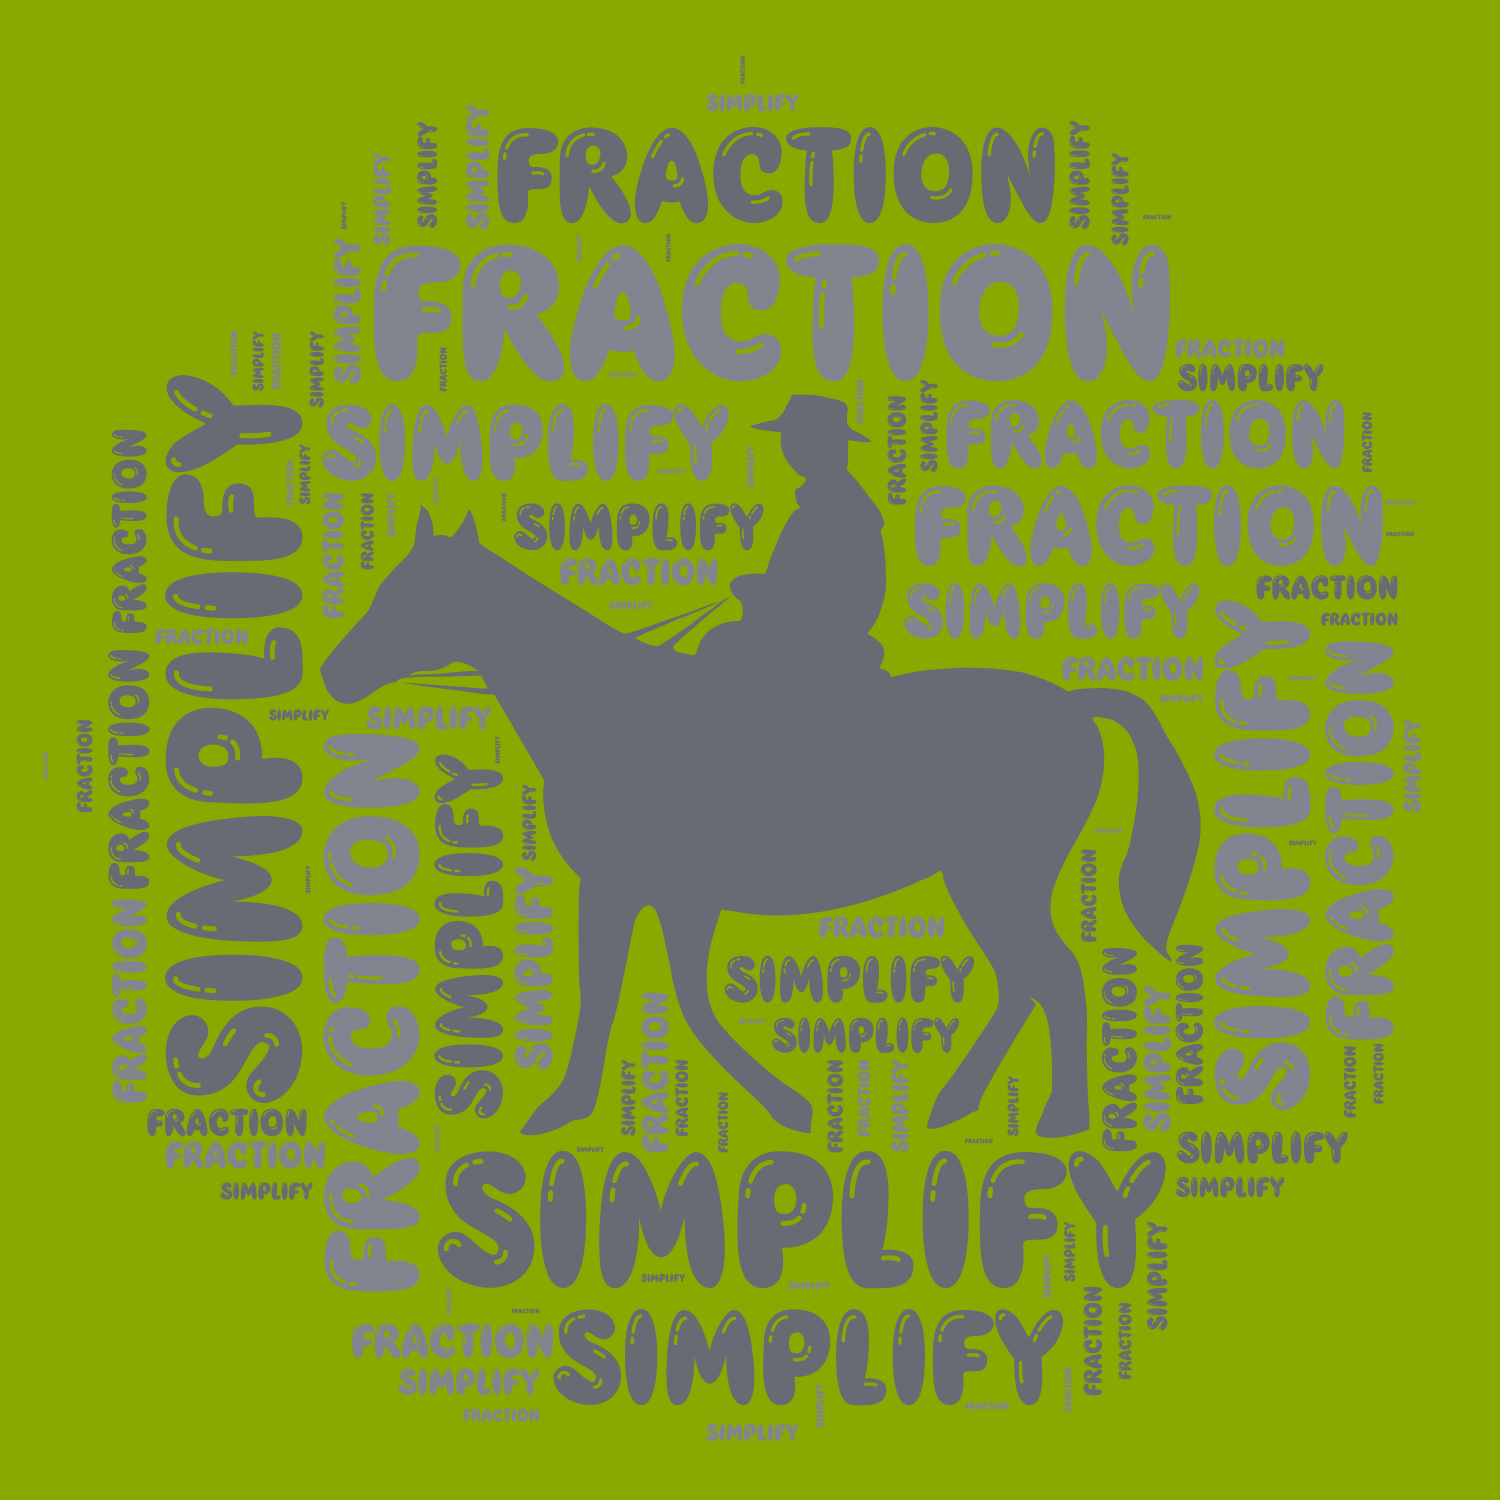 Simplify Fraction